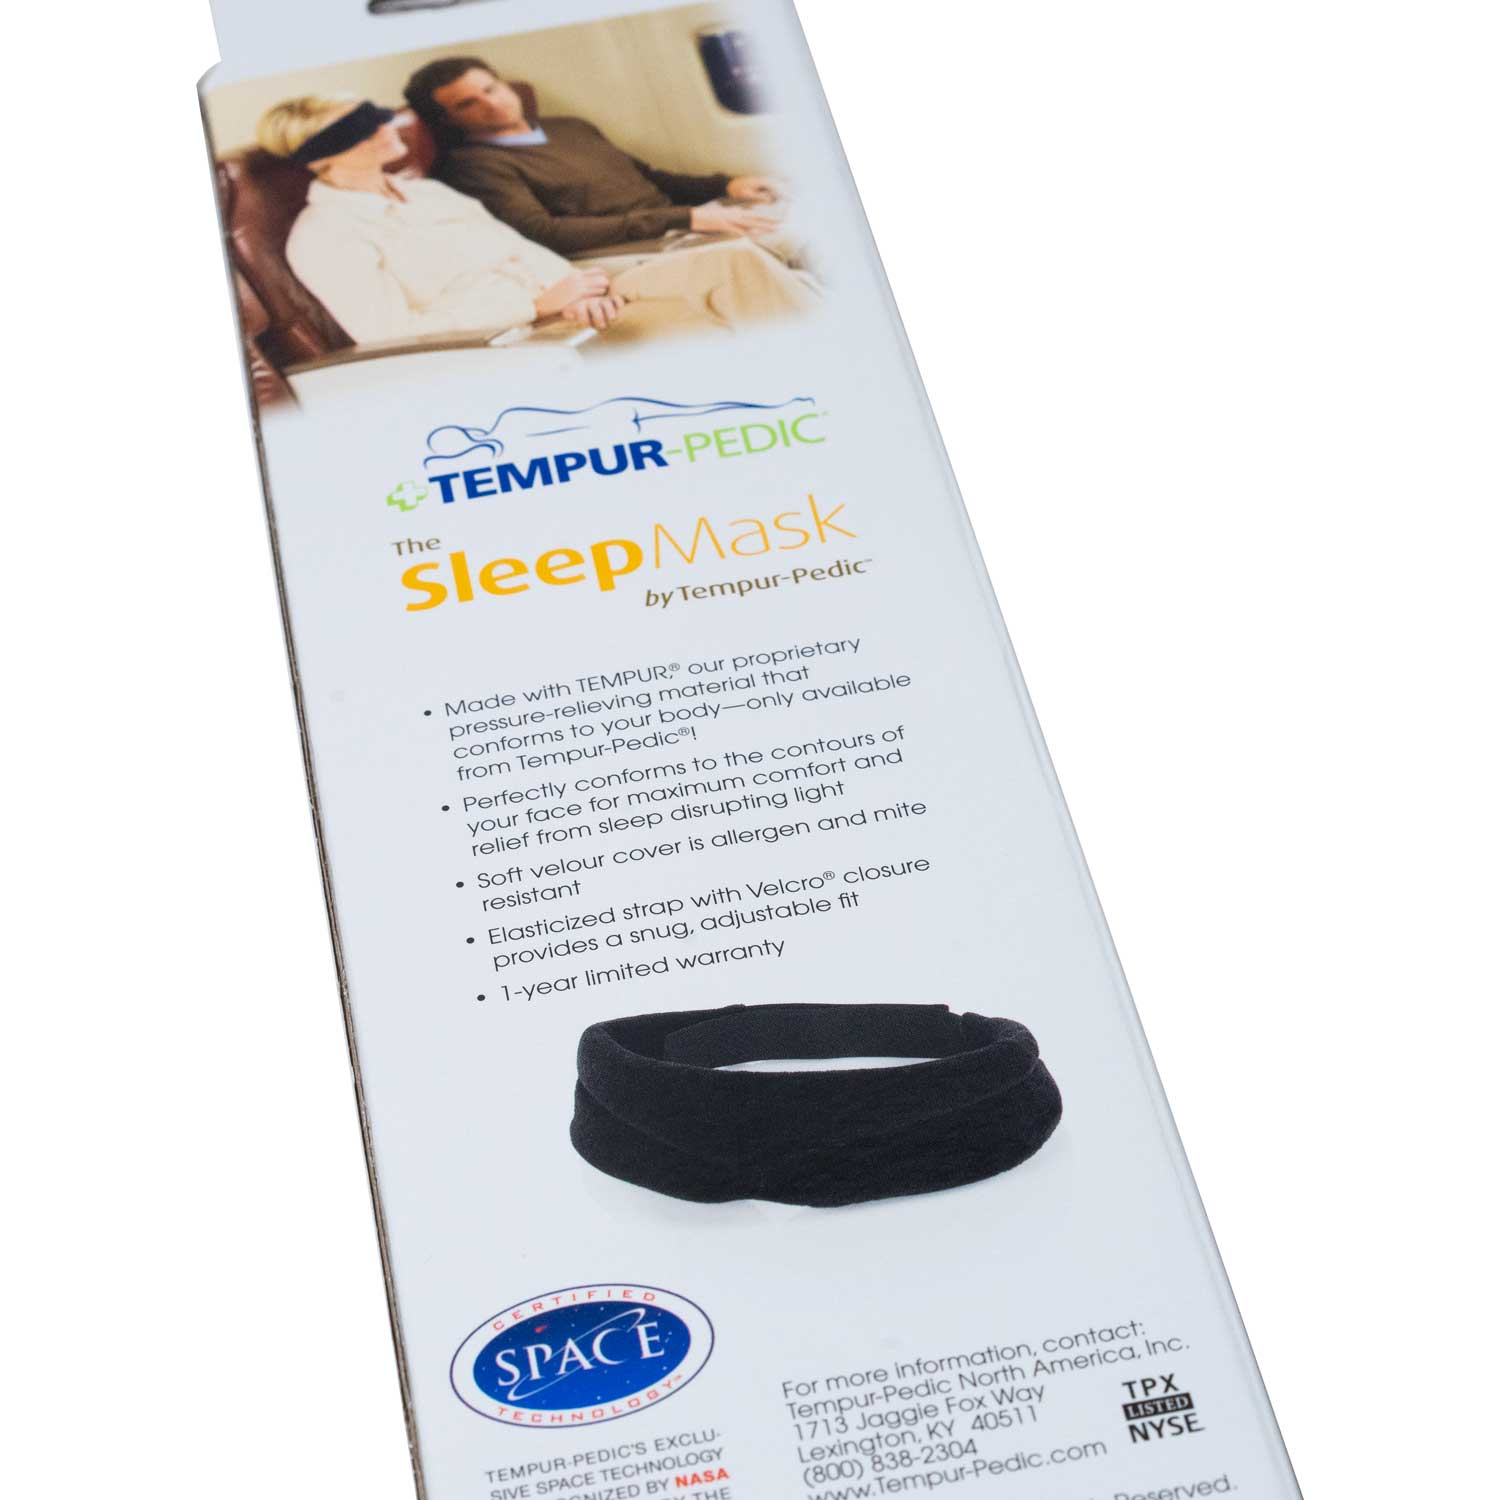 The Sleep Mask by Tempur Pedic(平行進口)